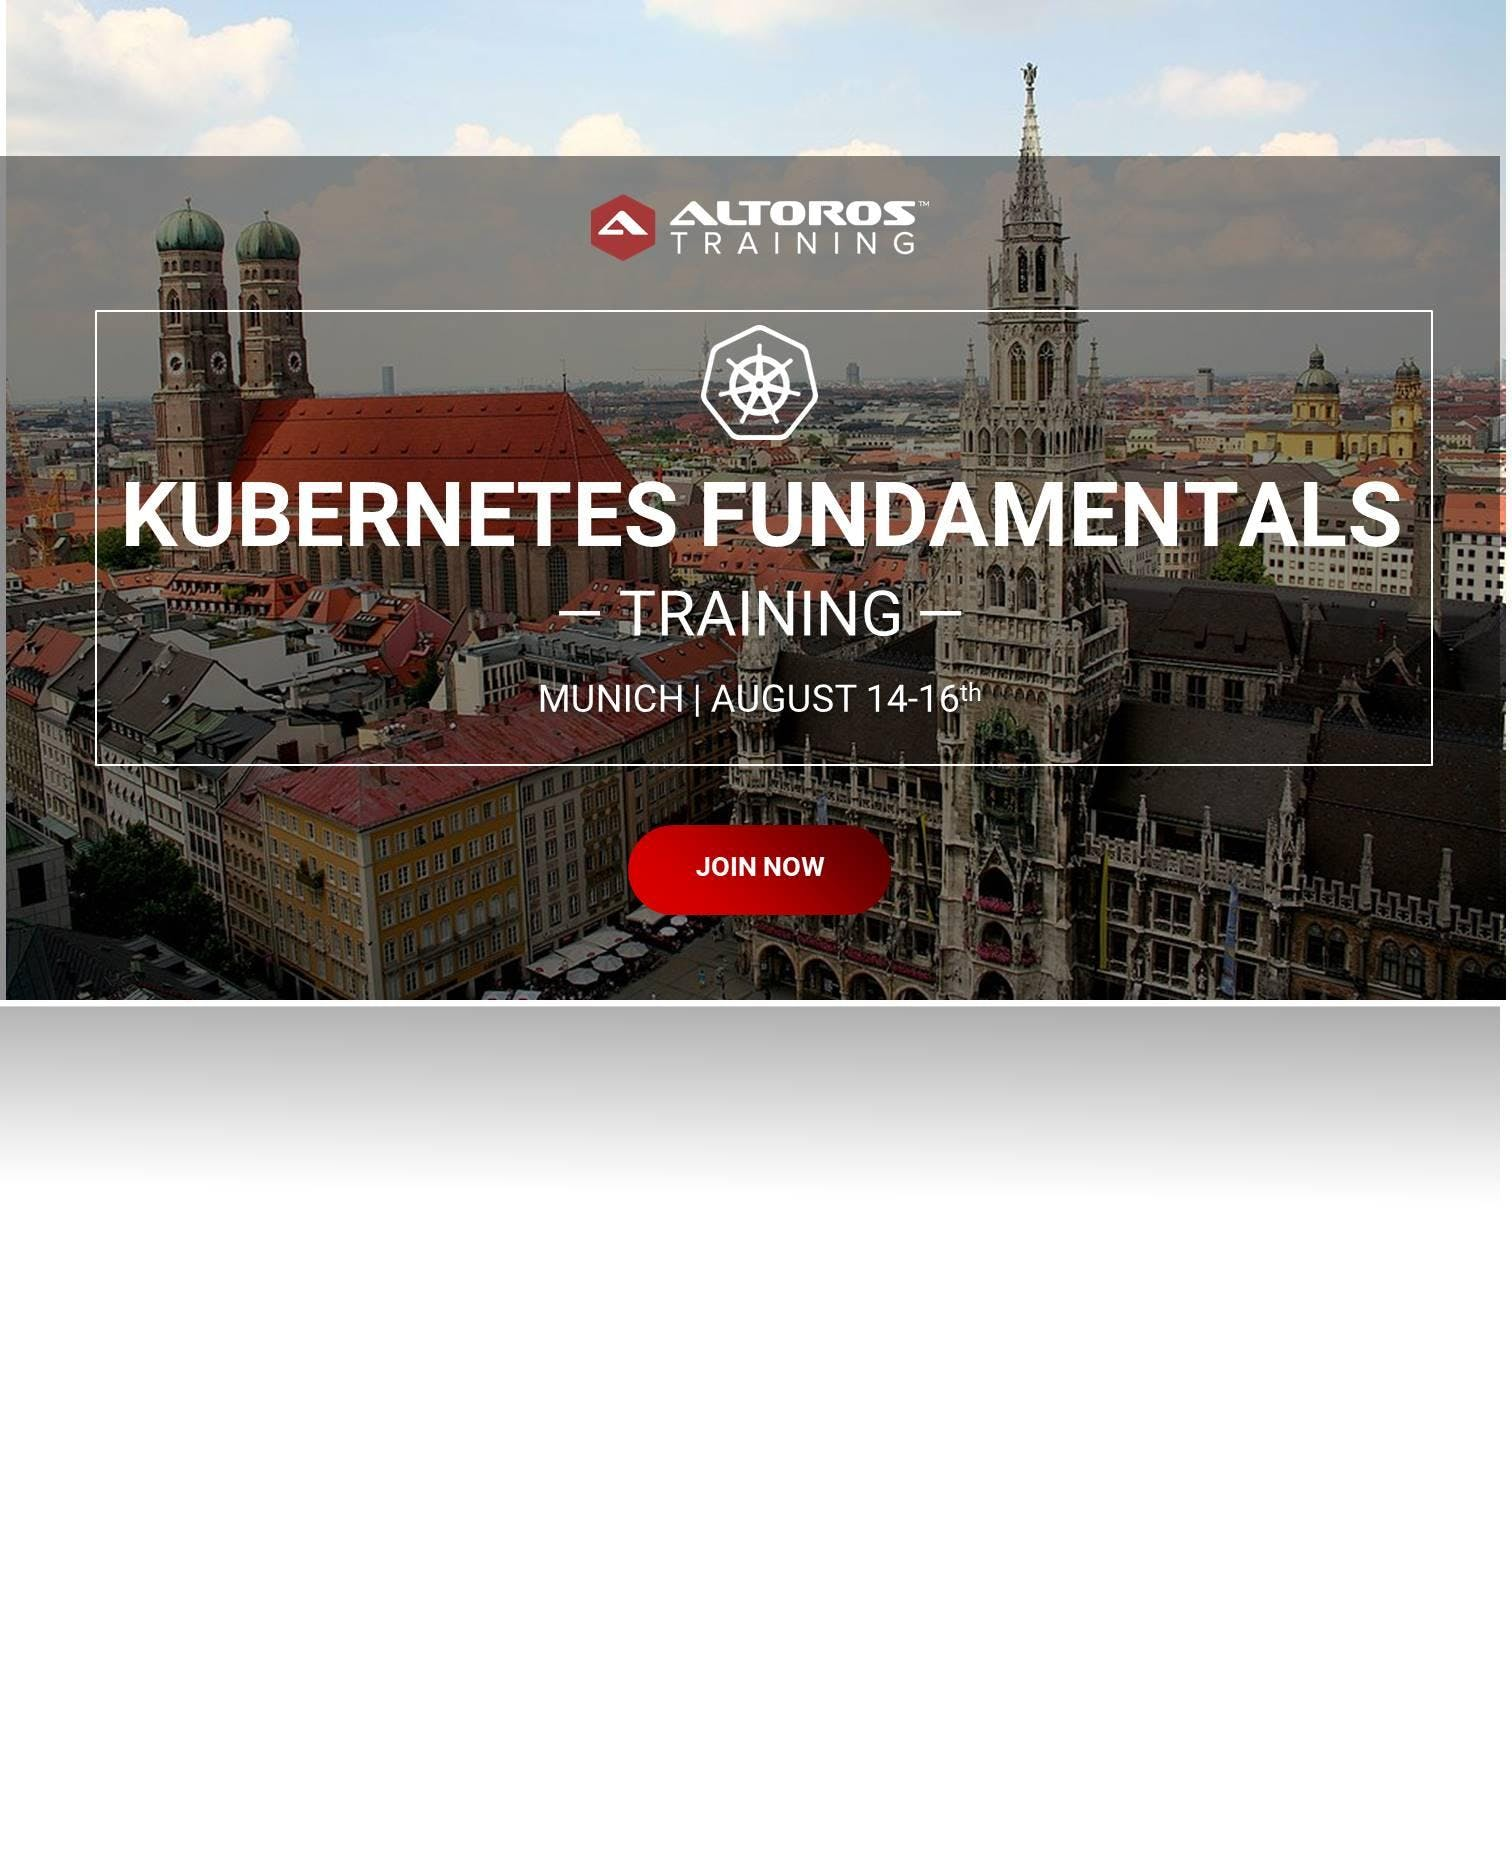 [TRAINING] Kubernetes Fundamentals: Munich